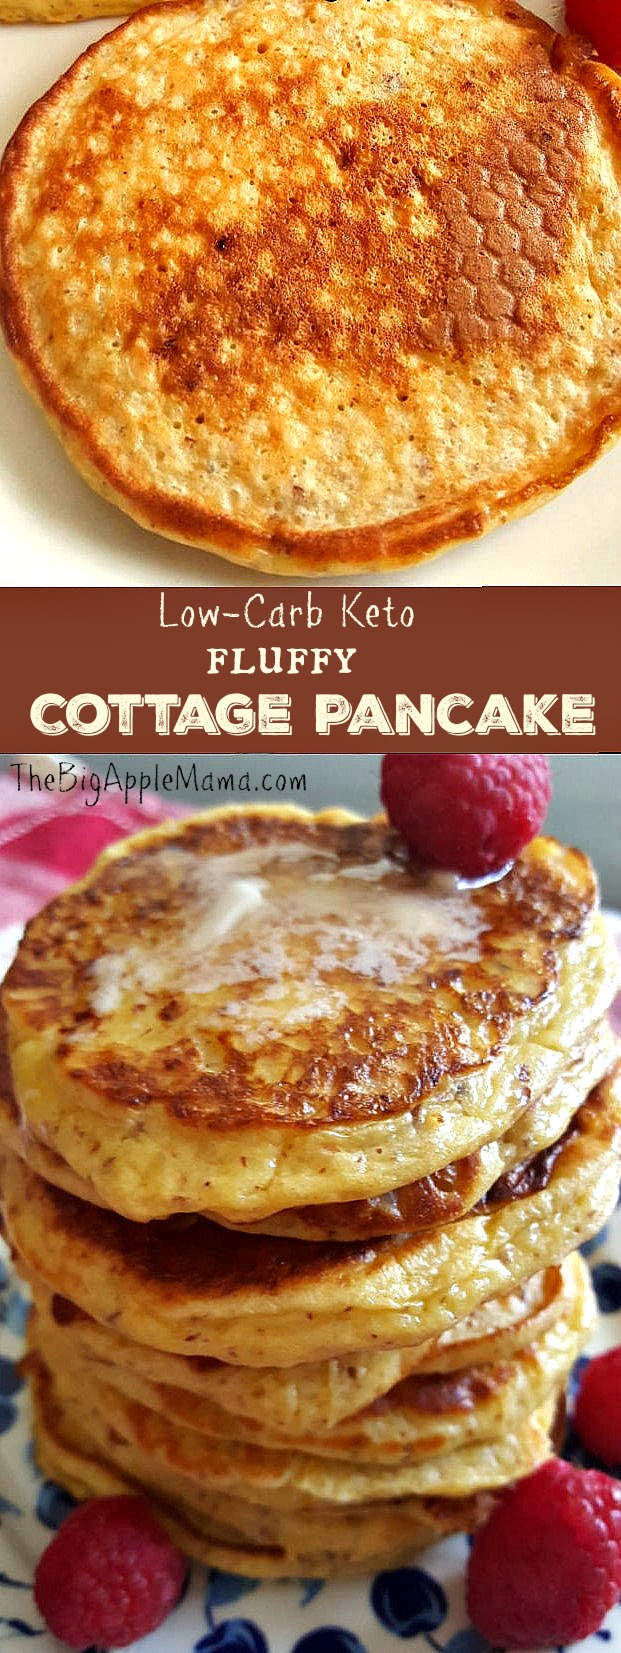 Low-Carb Keto Fluffy Cottage Cheese Pancakes